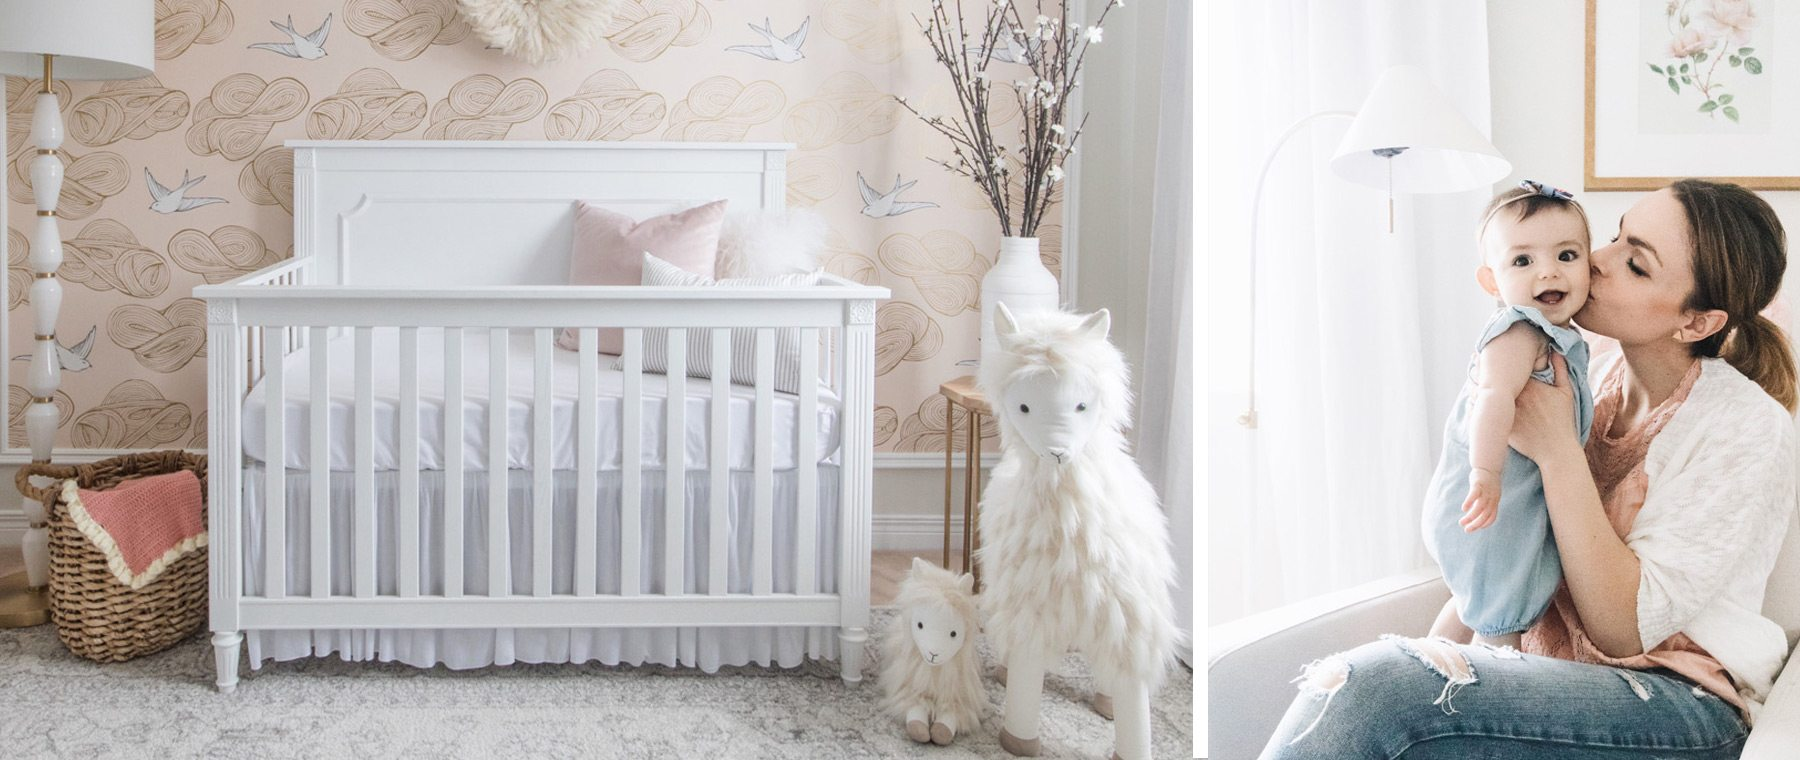 Smart Design: Design duo Sacha & Melissa Leclair welcome baby with modern & traditional mix